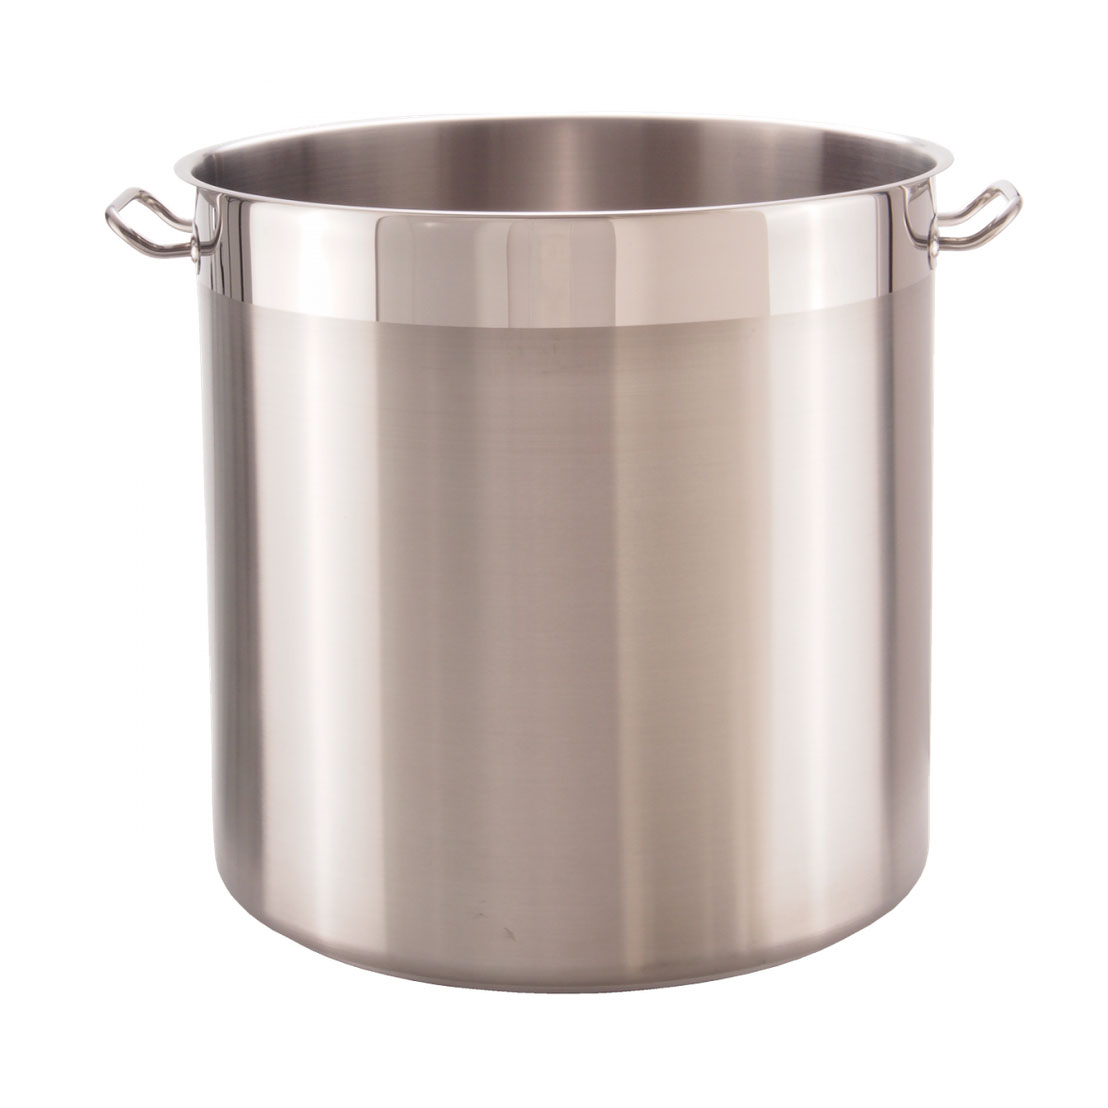 Libertyware SSPOT22WC Induction Stock Pot, 22 qt., with cover, stainless steel